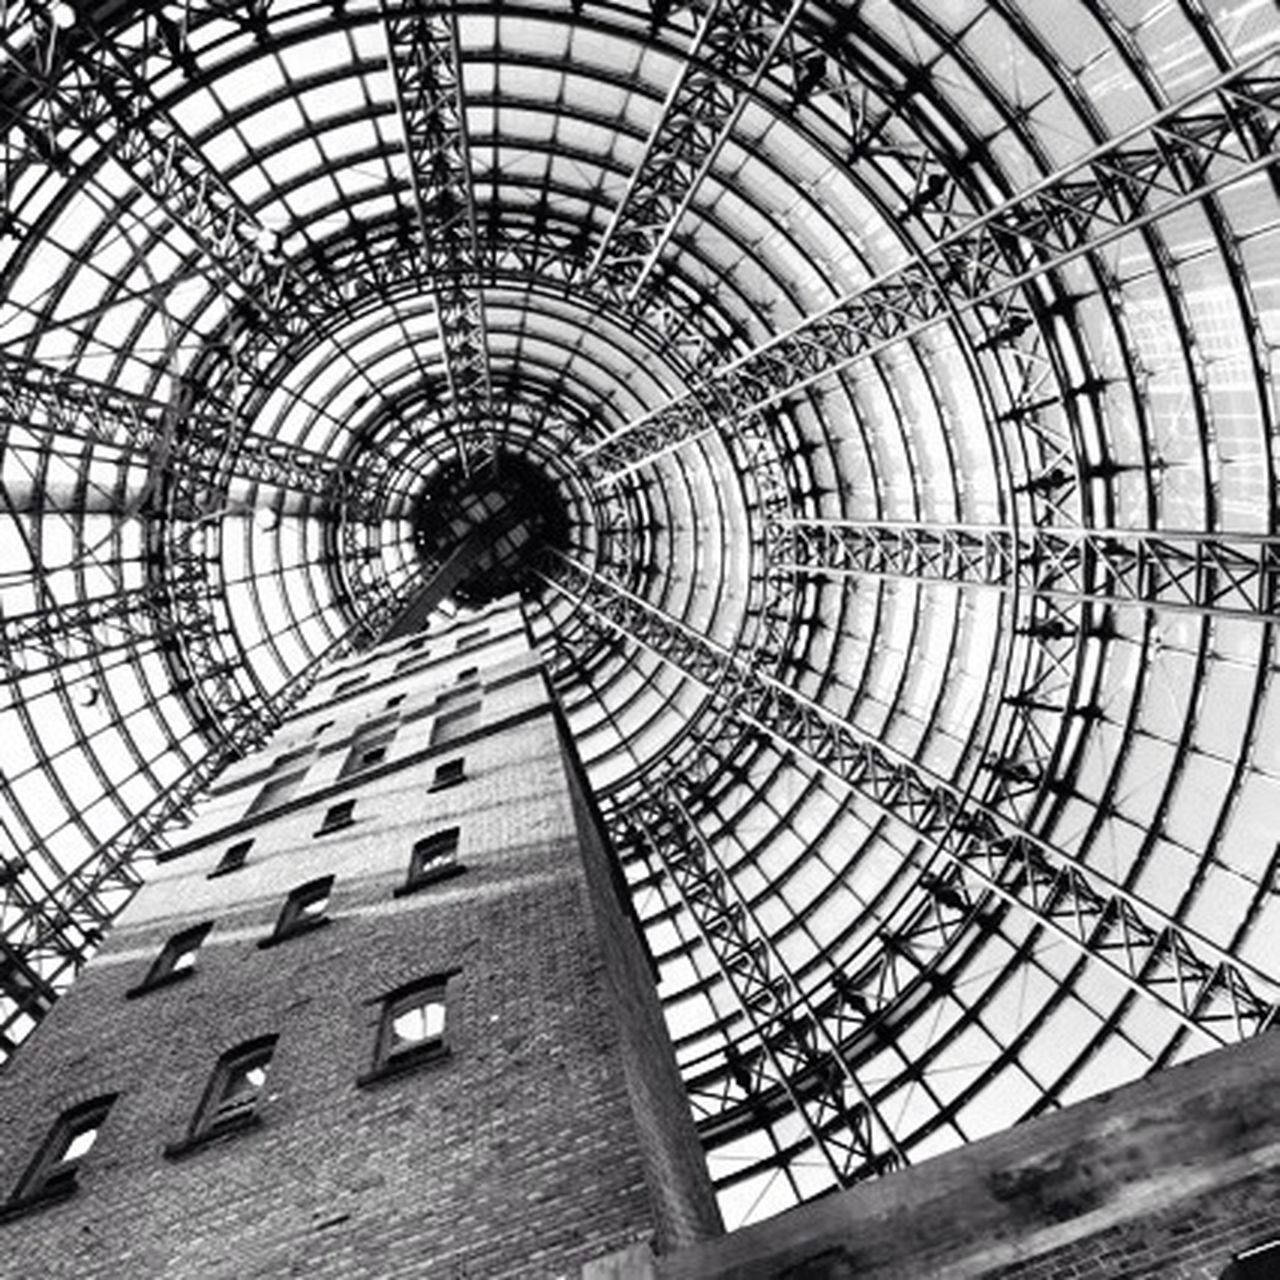 Architecture Streetphotography Melbourne Streetart Blackandwhite Love Black And White Taking Photos Hello World Streetphoto_bw Australia Hot_shotz Ee_daily My Favorite Place